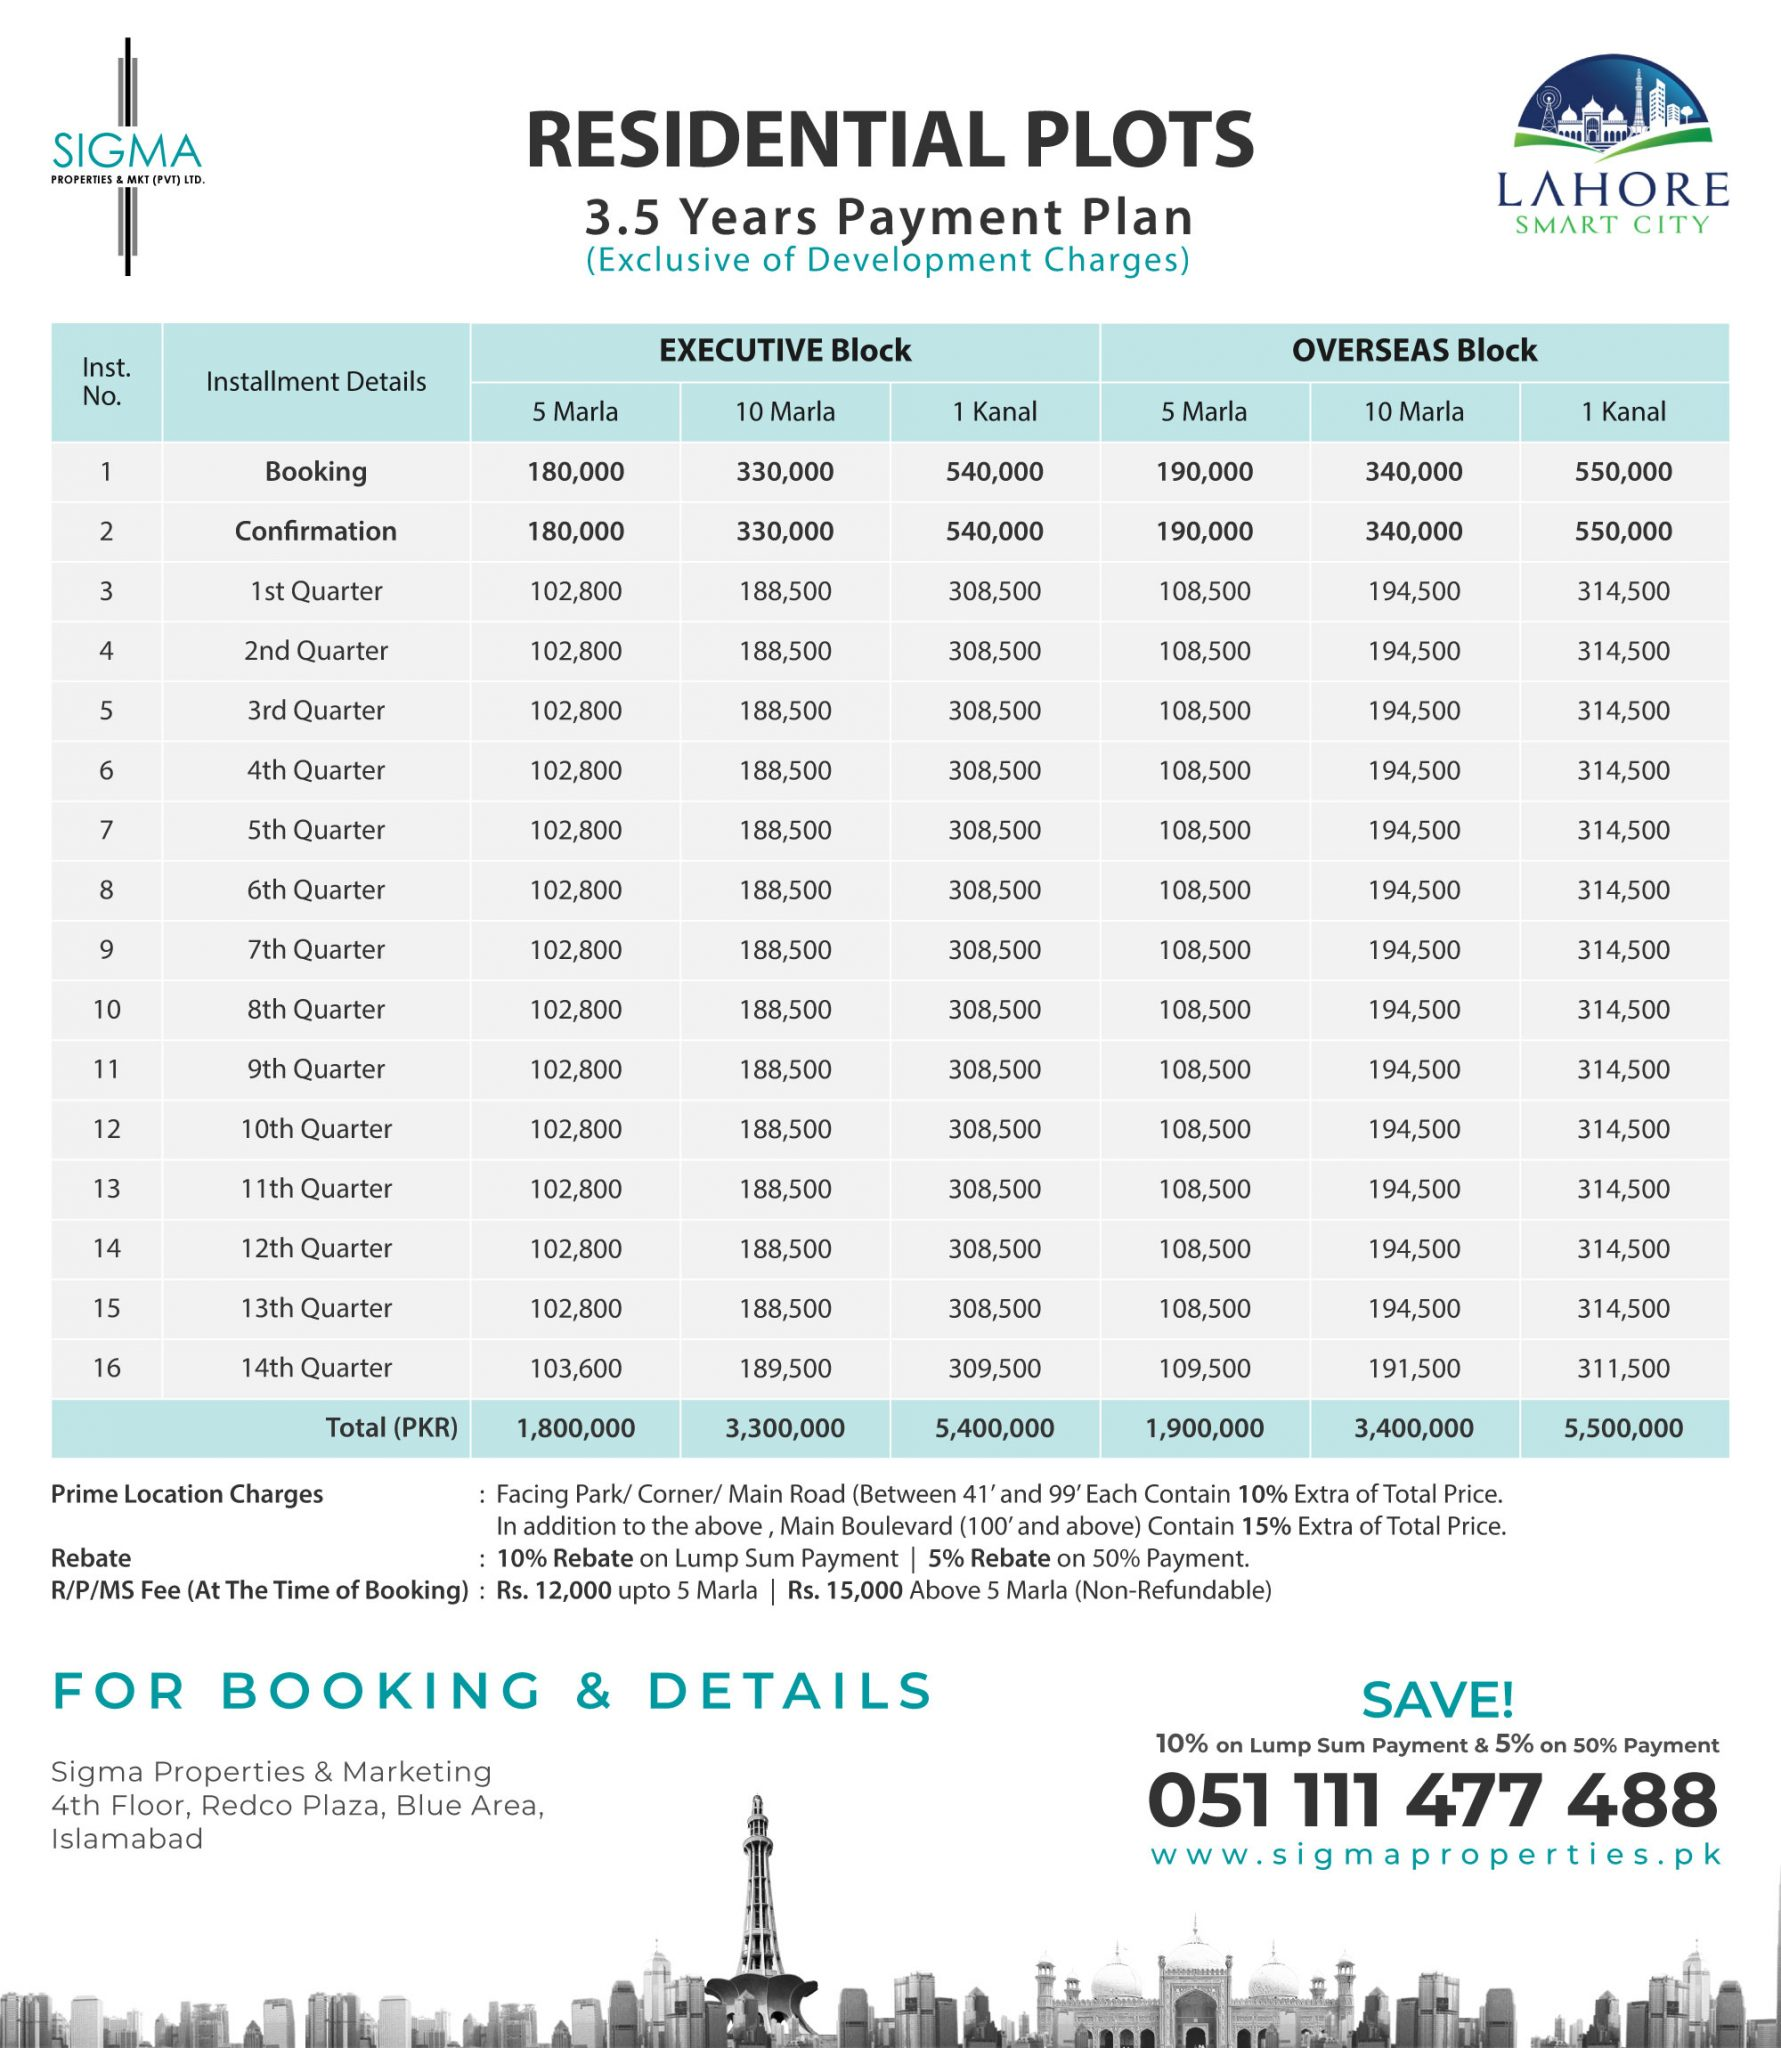 residential and commercial plot payment plan of Lahore smart city